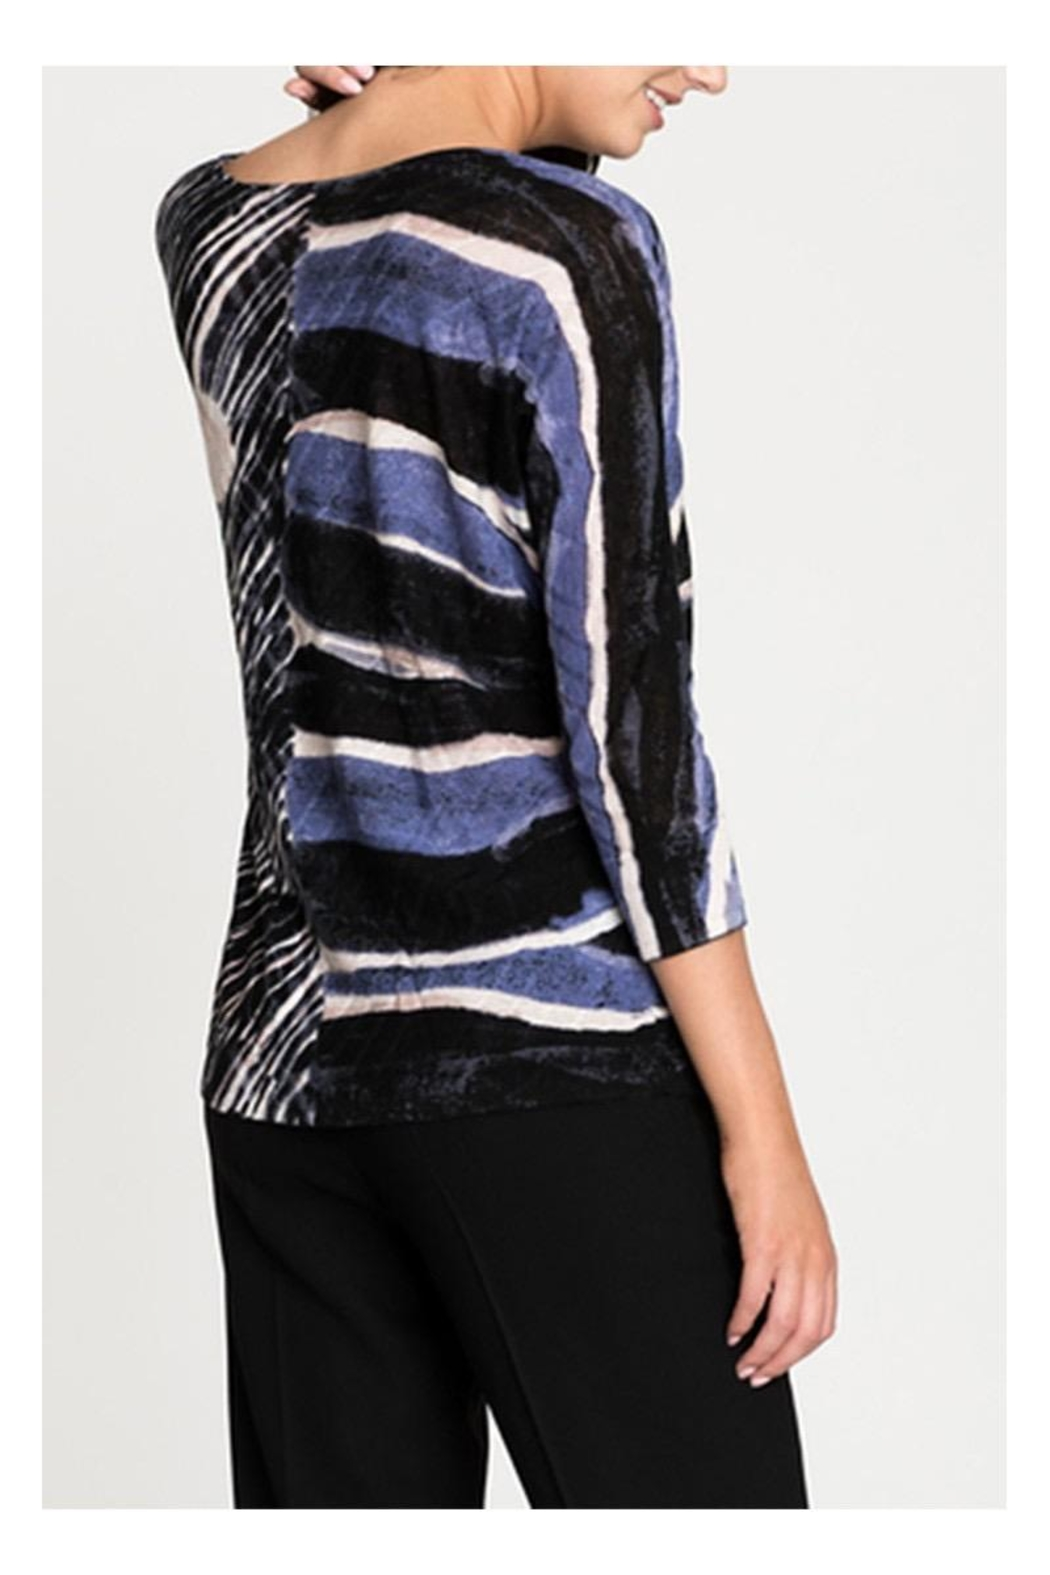 Nic + Zoe Light Knit Top - Front Full Image